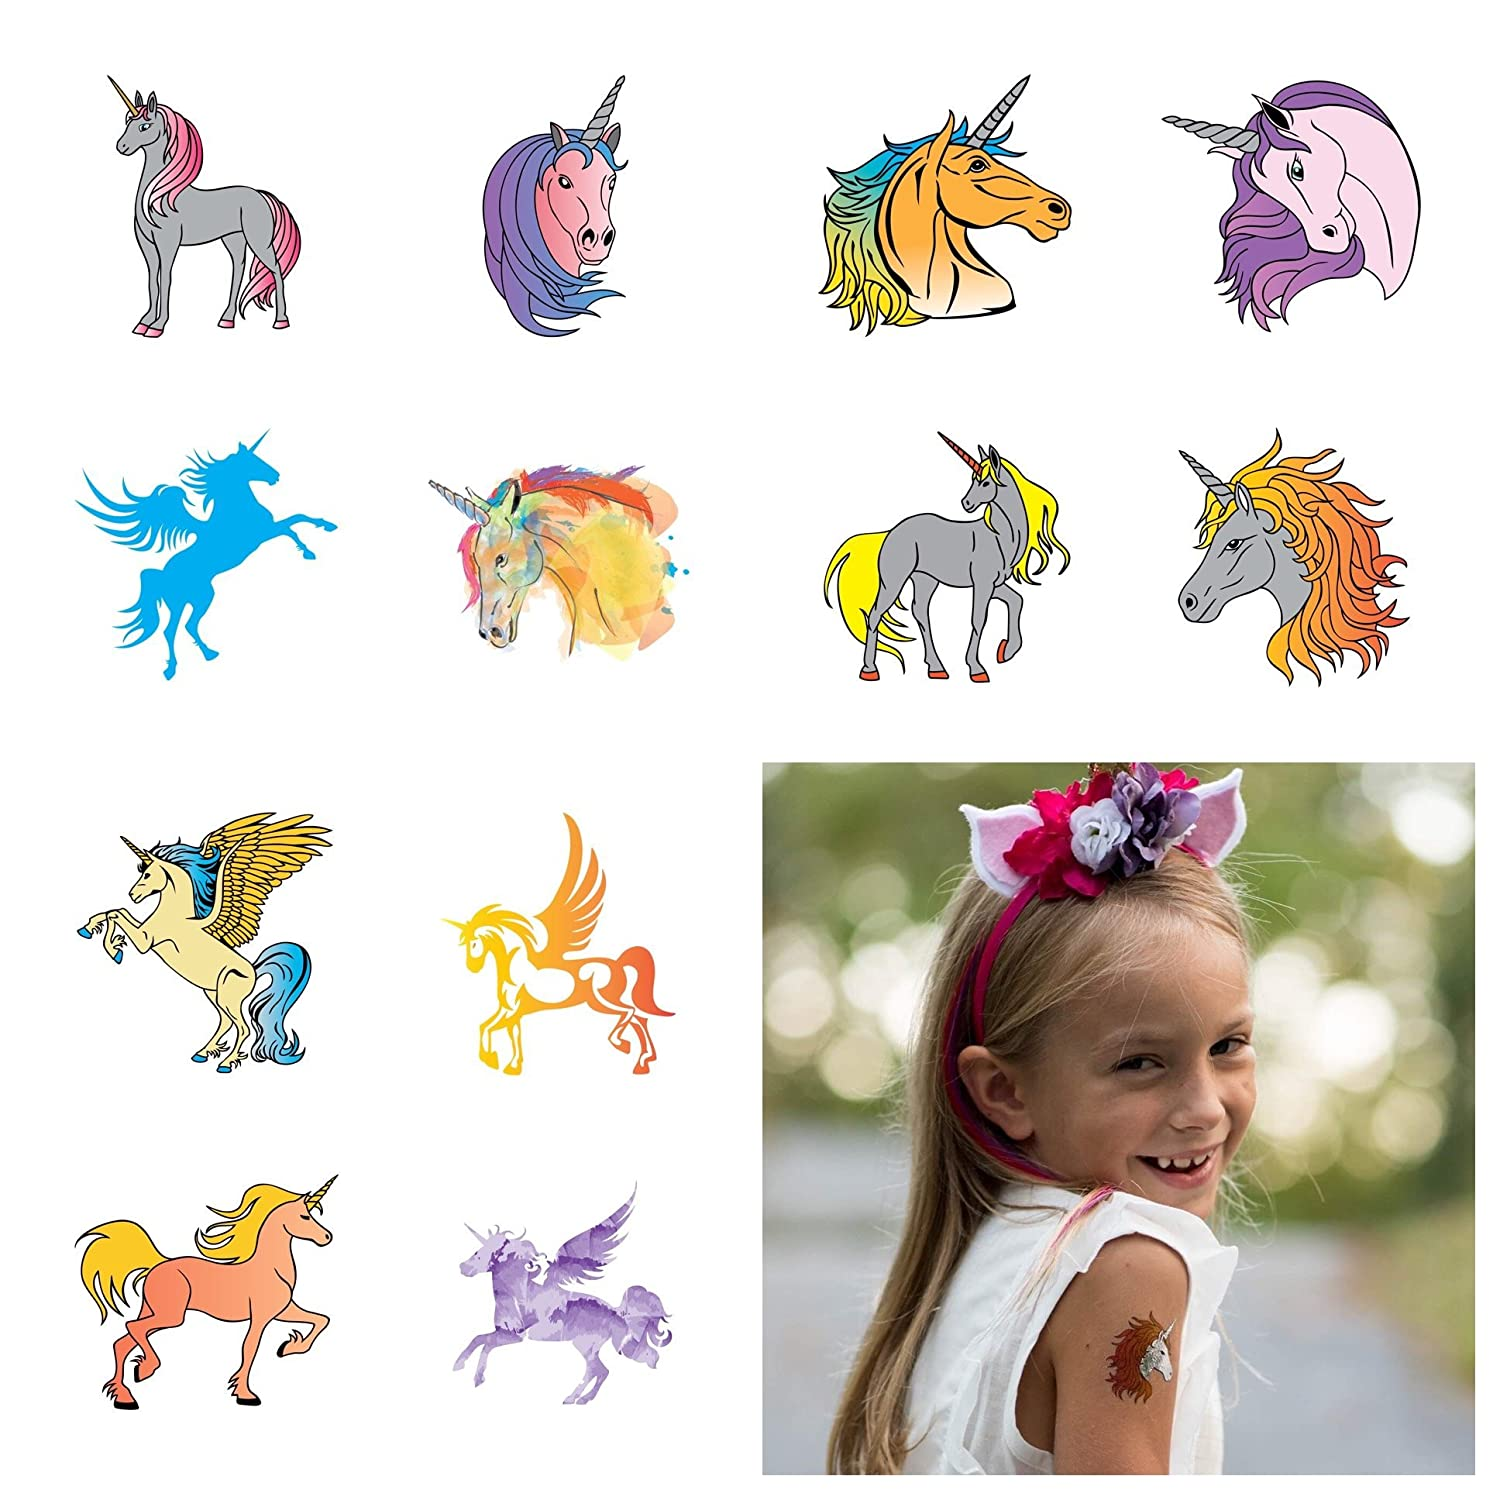 John & Judy 12 Unicorn Temporary Tattoos for Girls | Individually Wrapped Metallic Tattoos | For Unicorn Party Supplies | Goody Bags and Games | Party Favors and Princess Birthdays | Rainbow Unicorn a